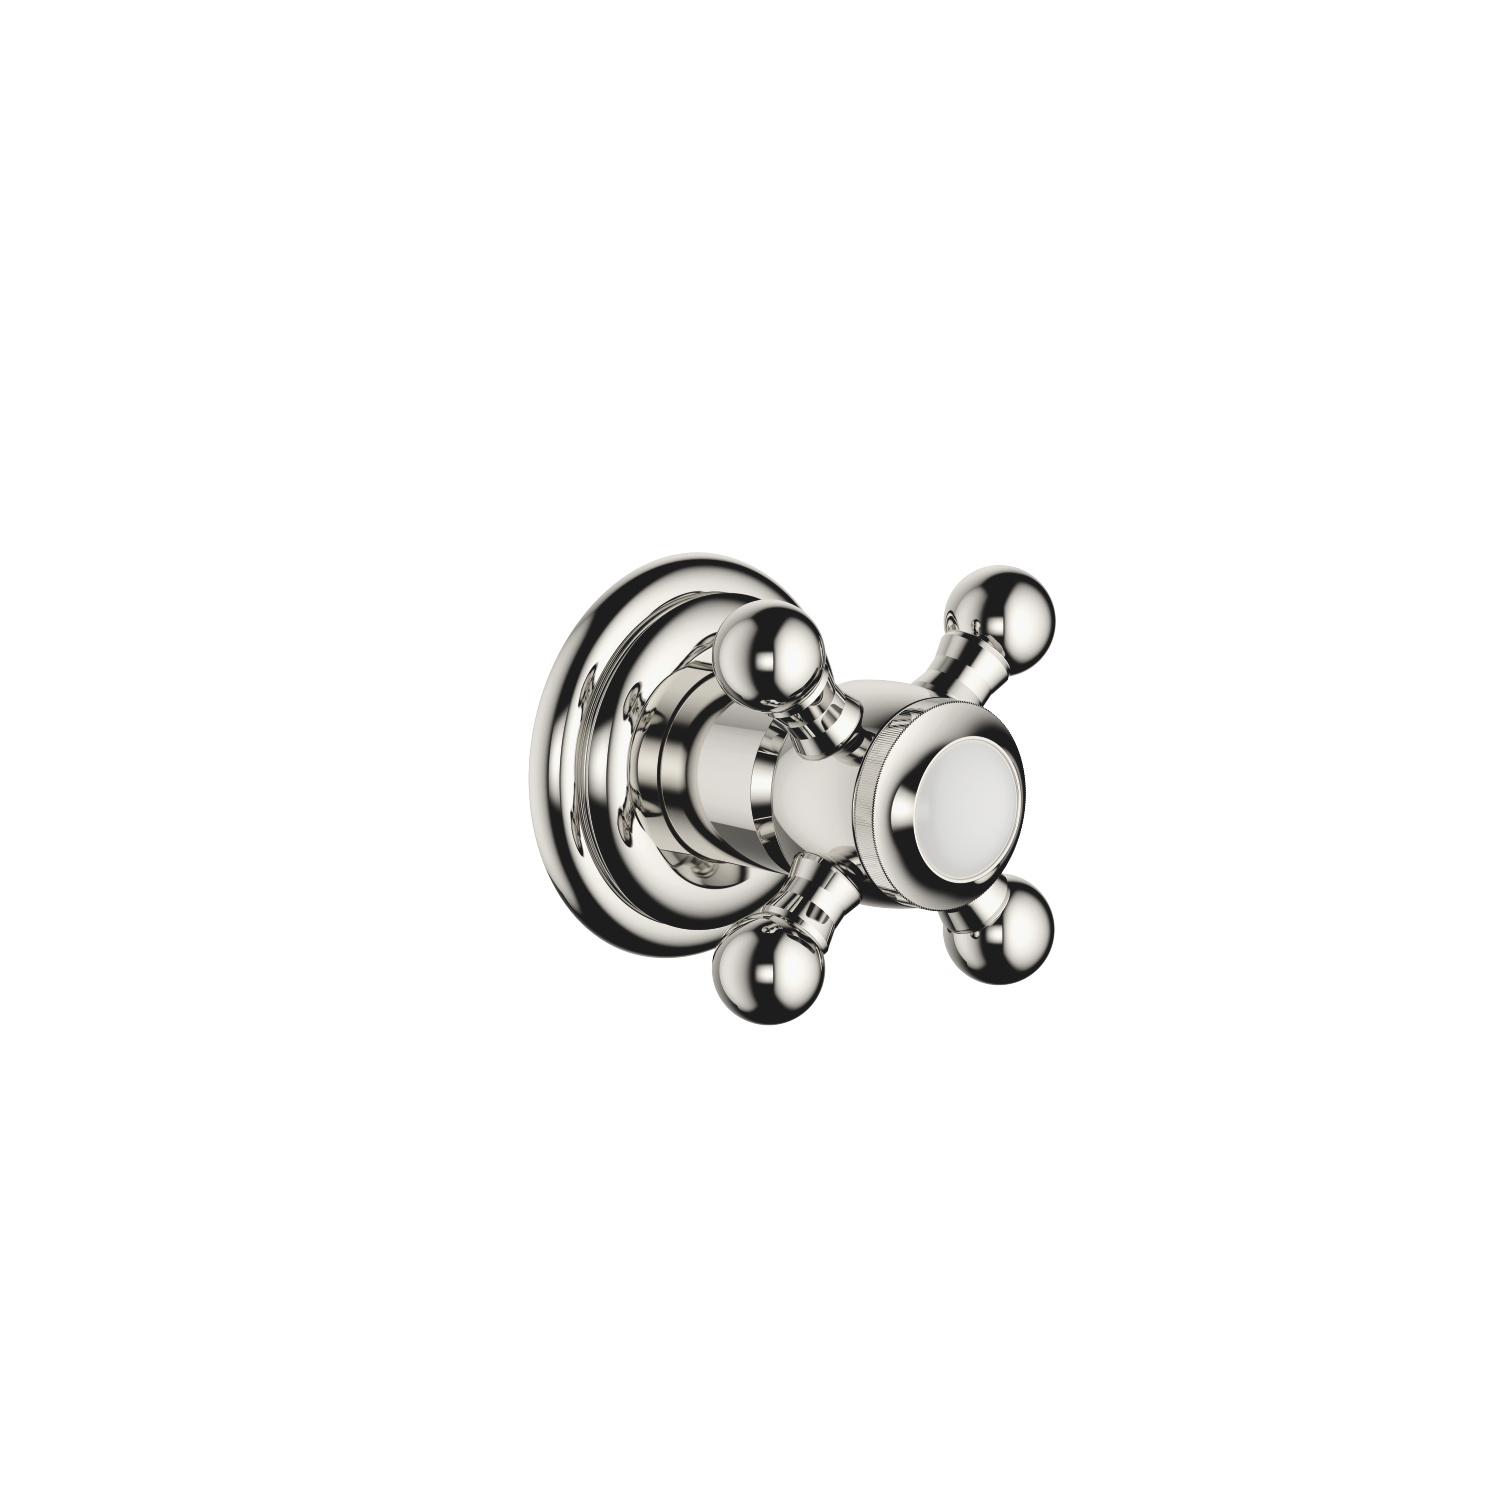 Wall valve - platinum